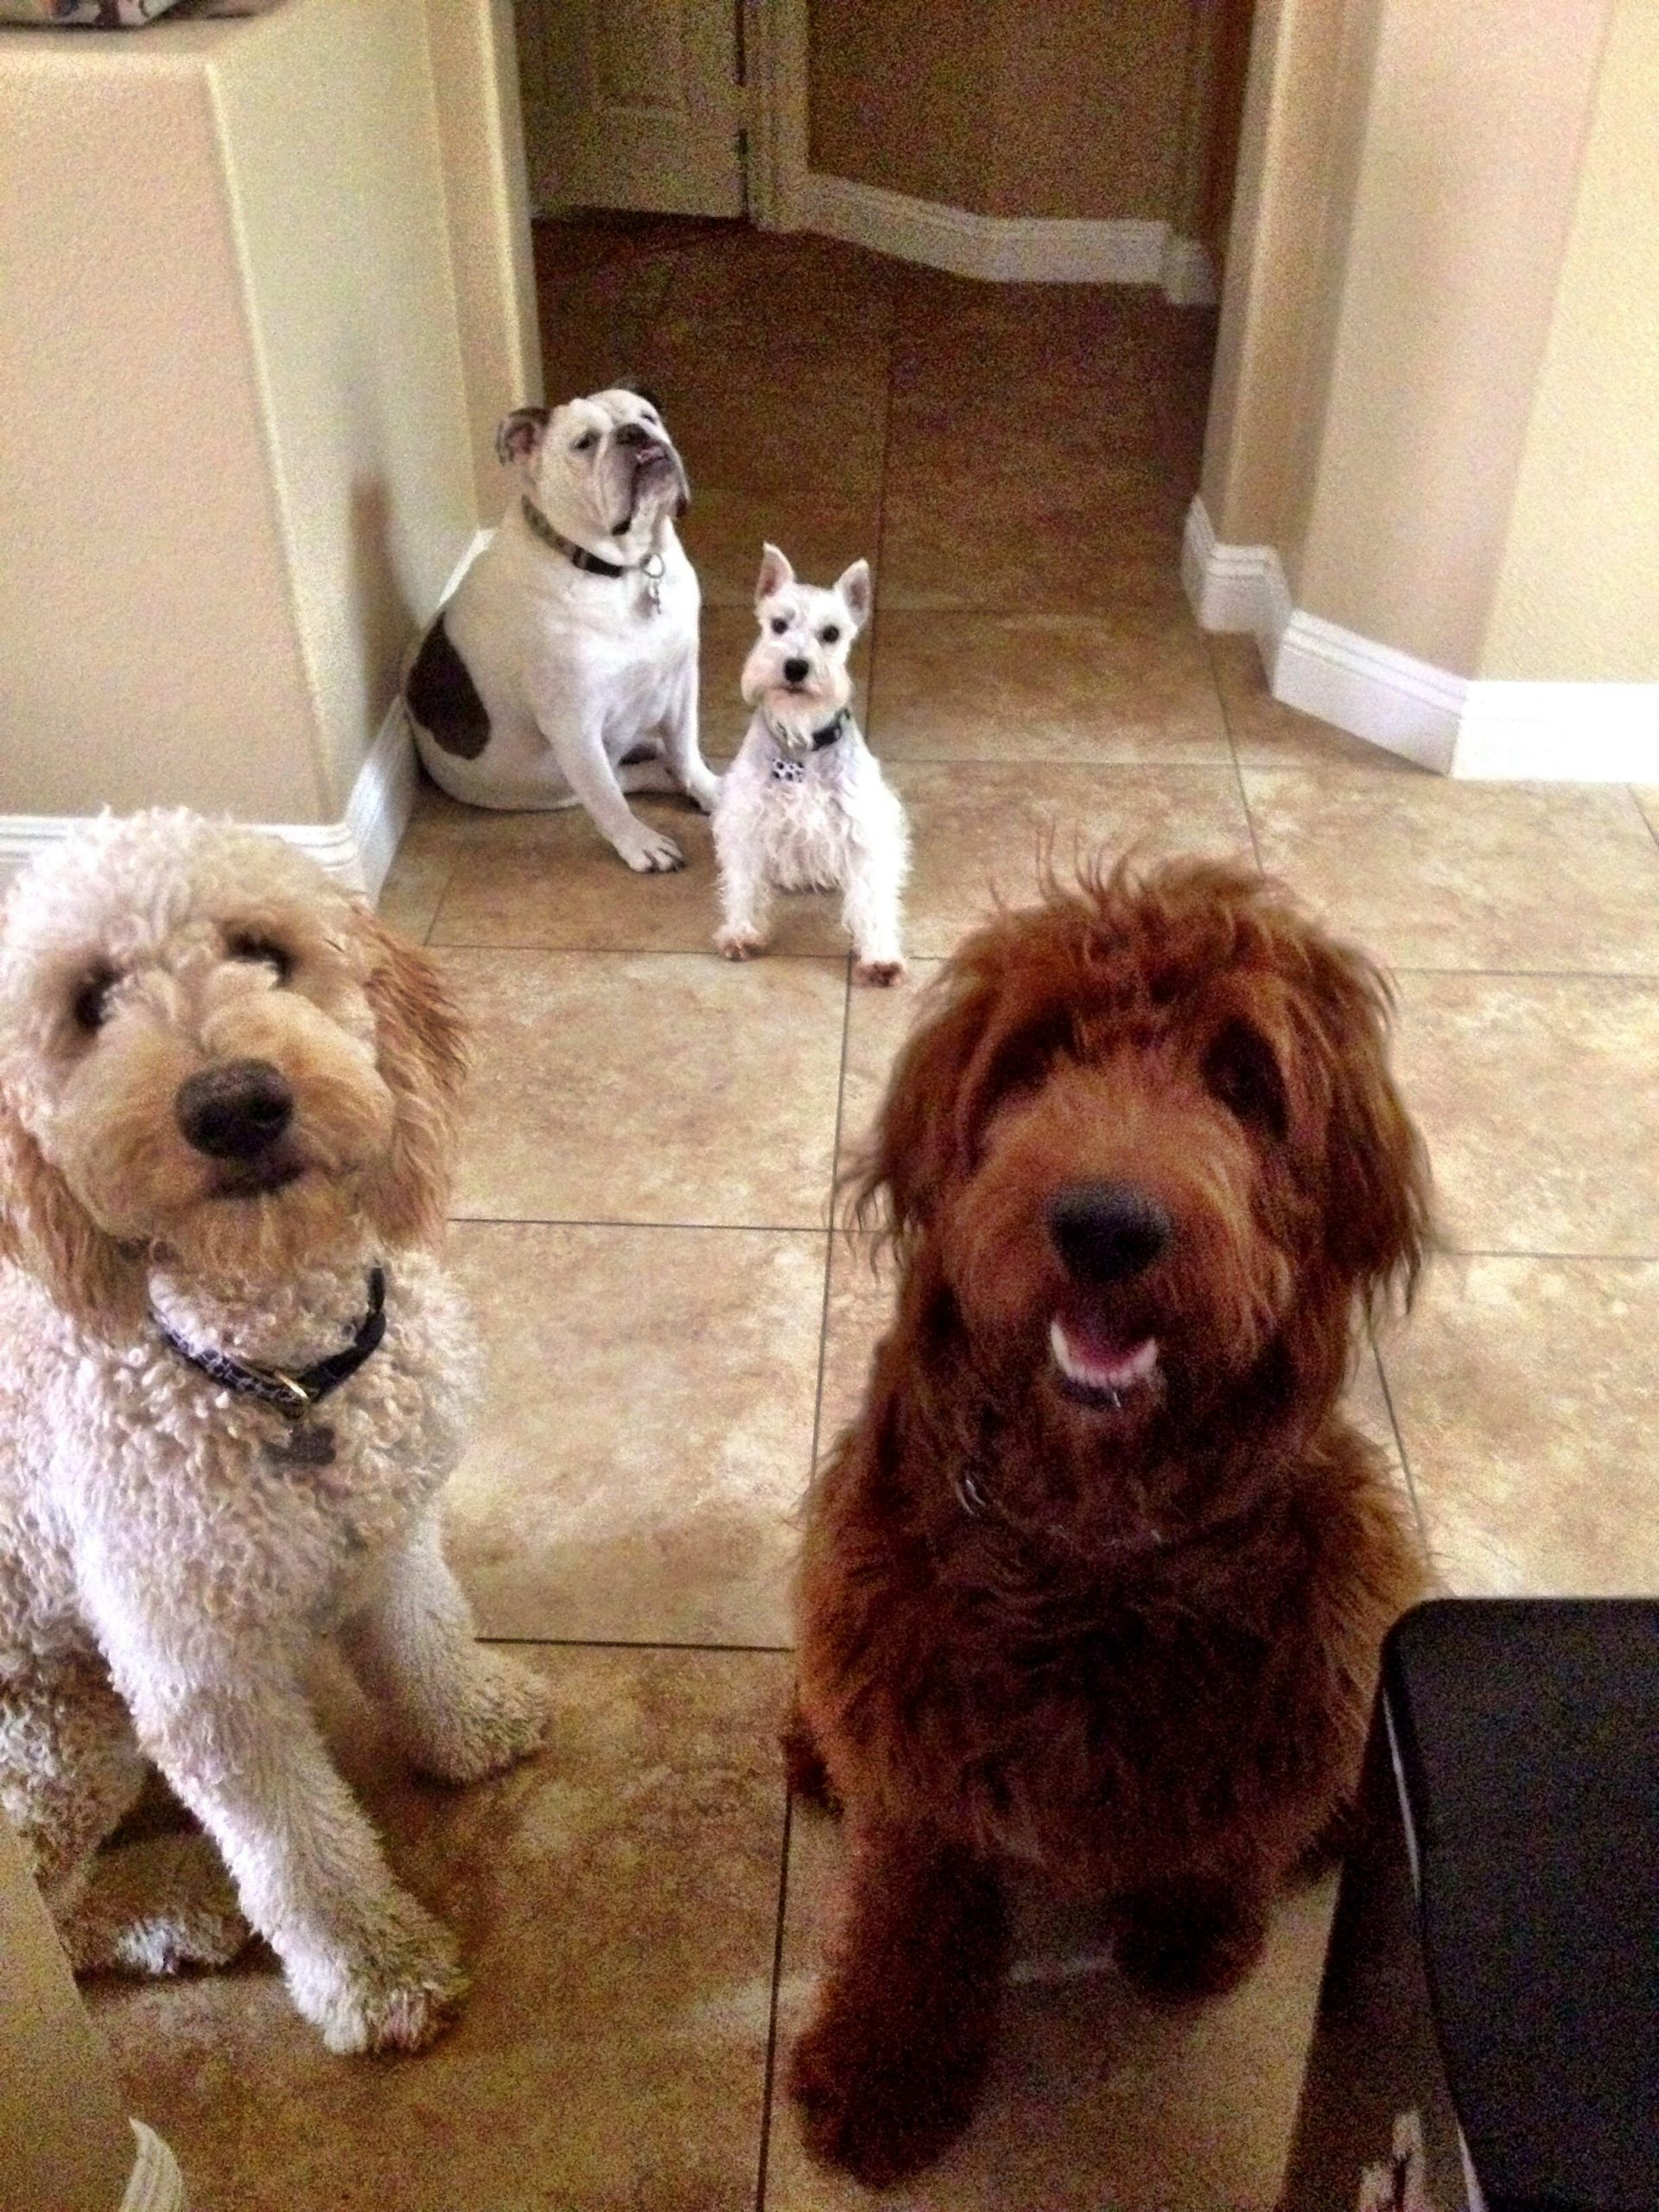 The Brat Pack @Hendrix_The_Doodle #Goldendoodles# Baby Due Date Doodle Poll